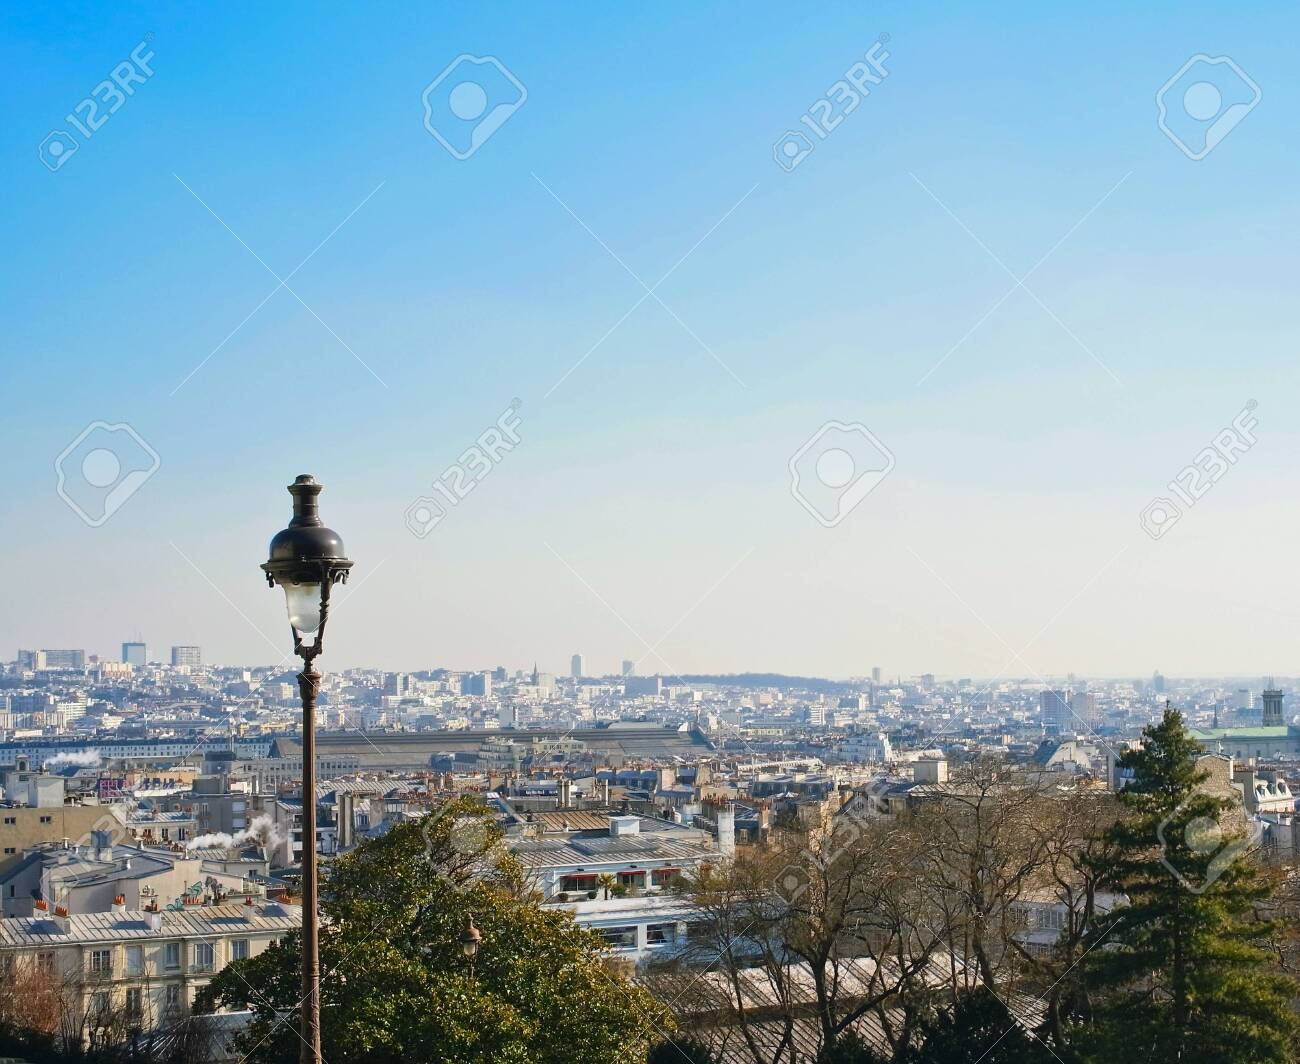 antique city building in paris,france Europe Stock Photo - 12335439